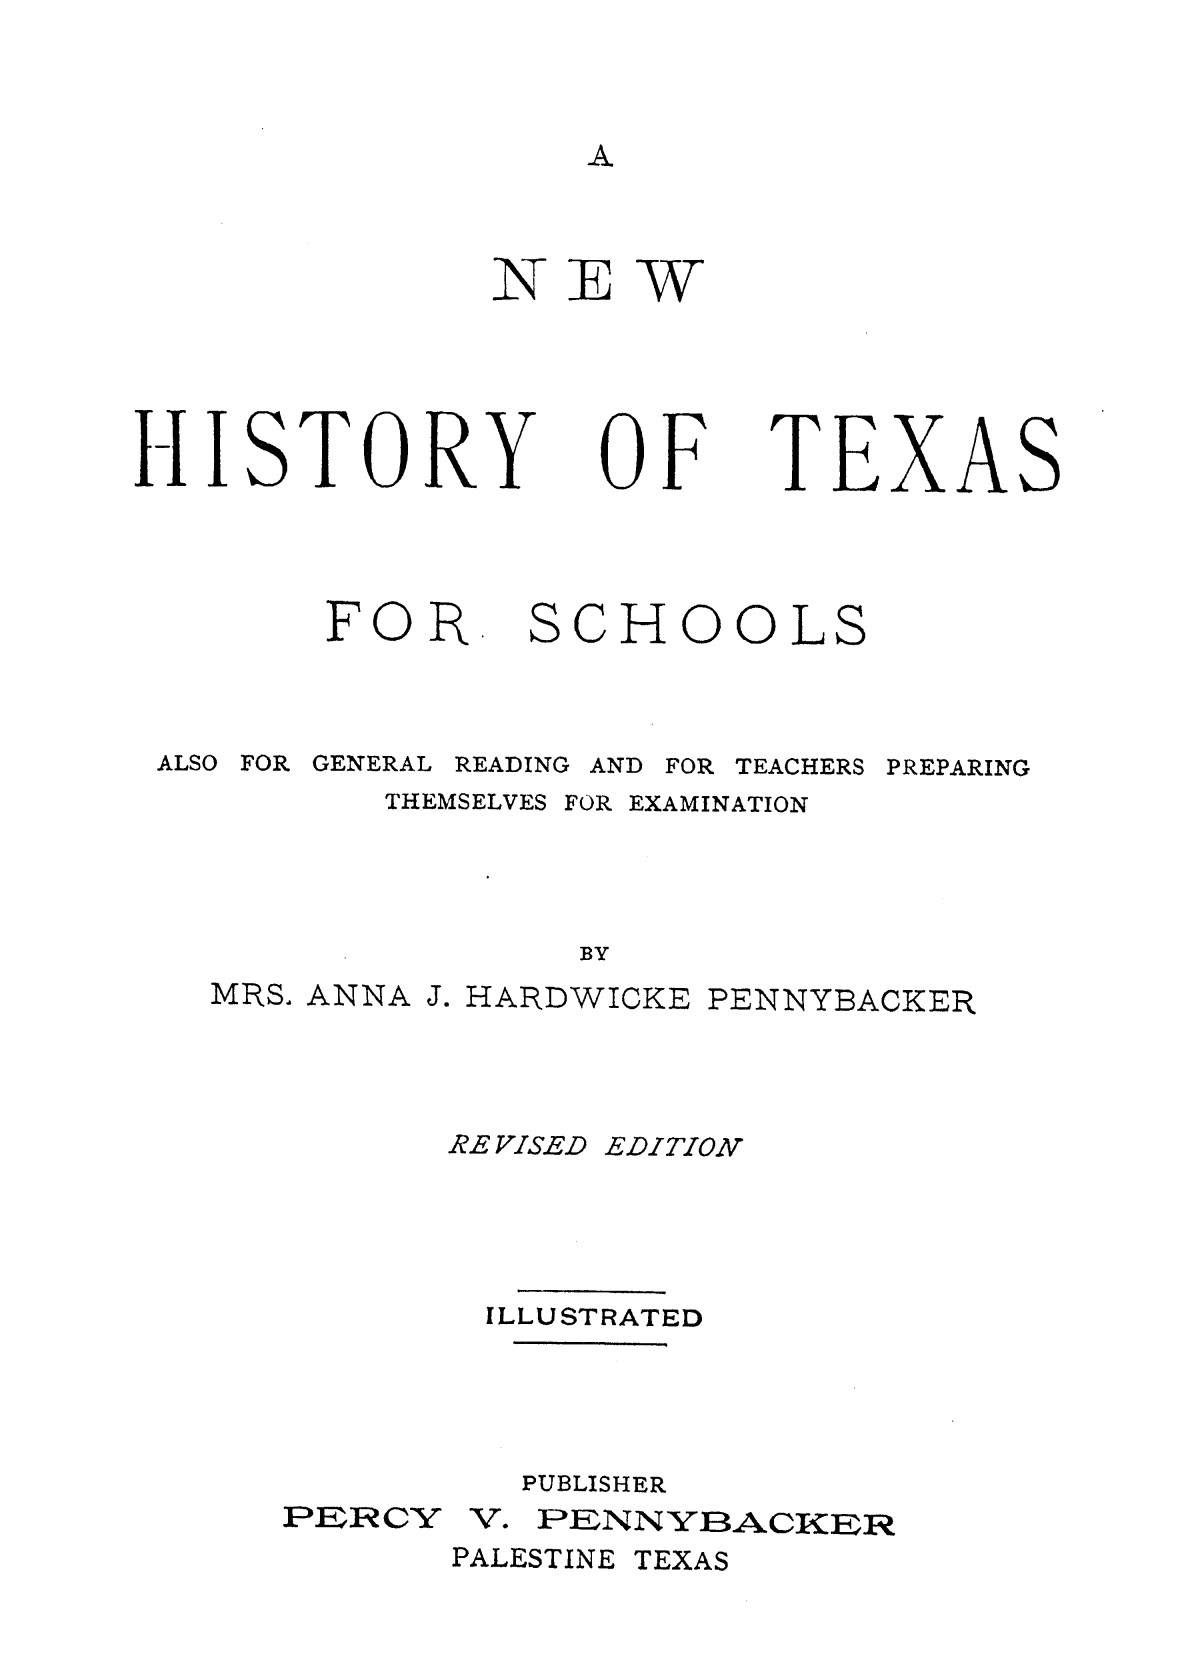 A new history of Texas for schools : also for general reading and for teachers preparing themselves for examination                                                                                                      [Sequence #]: 1 of 412